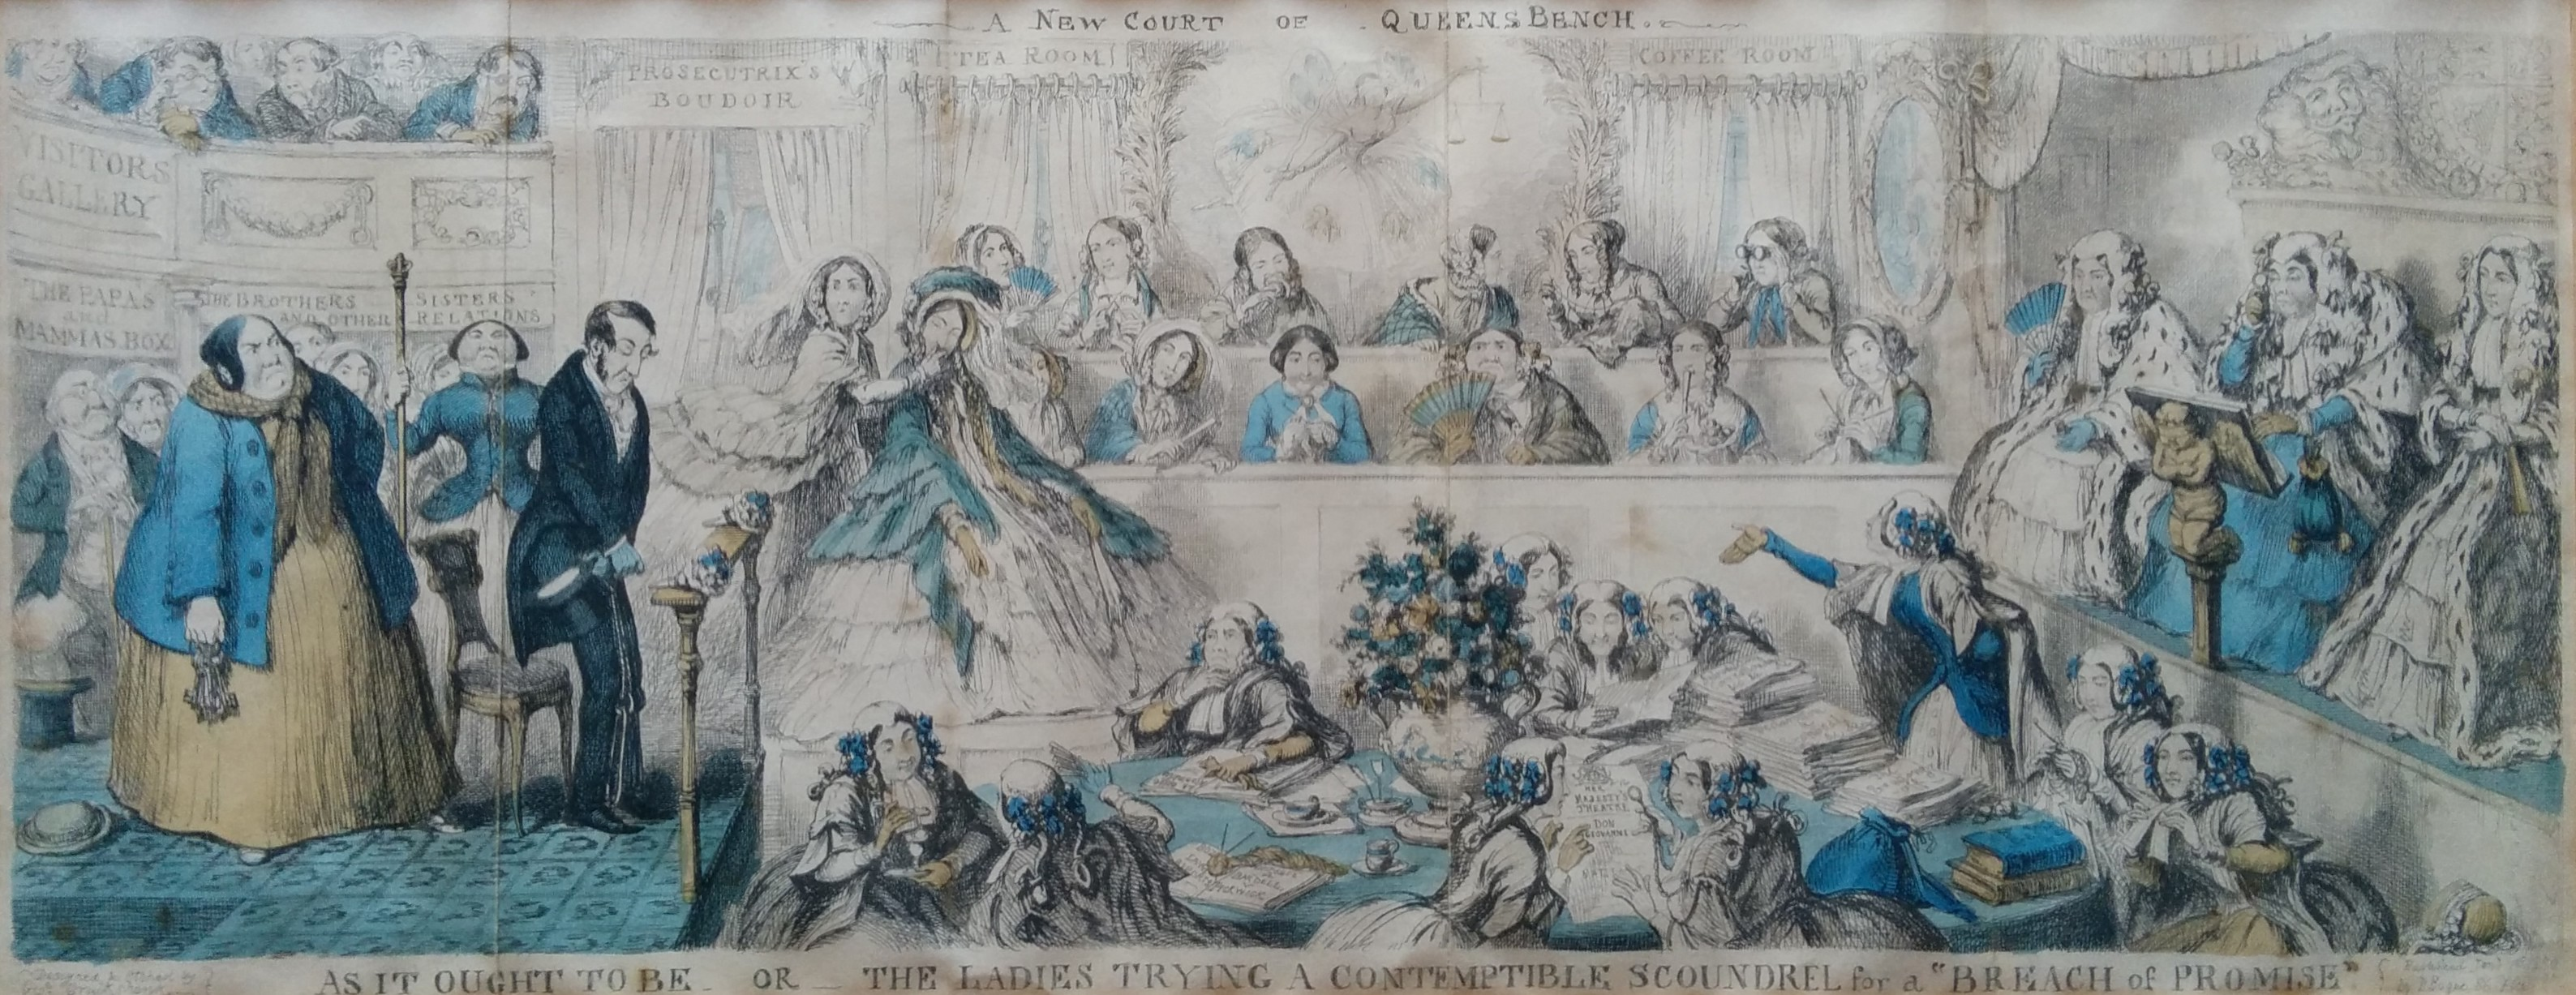 womens role in 19th century